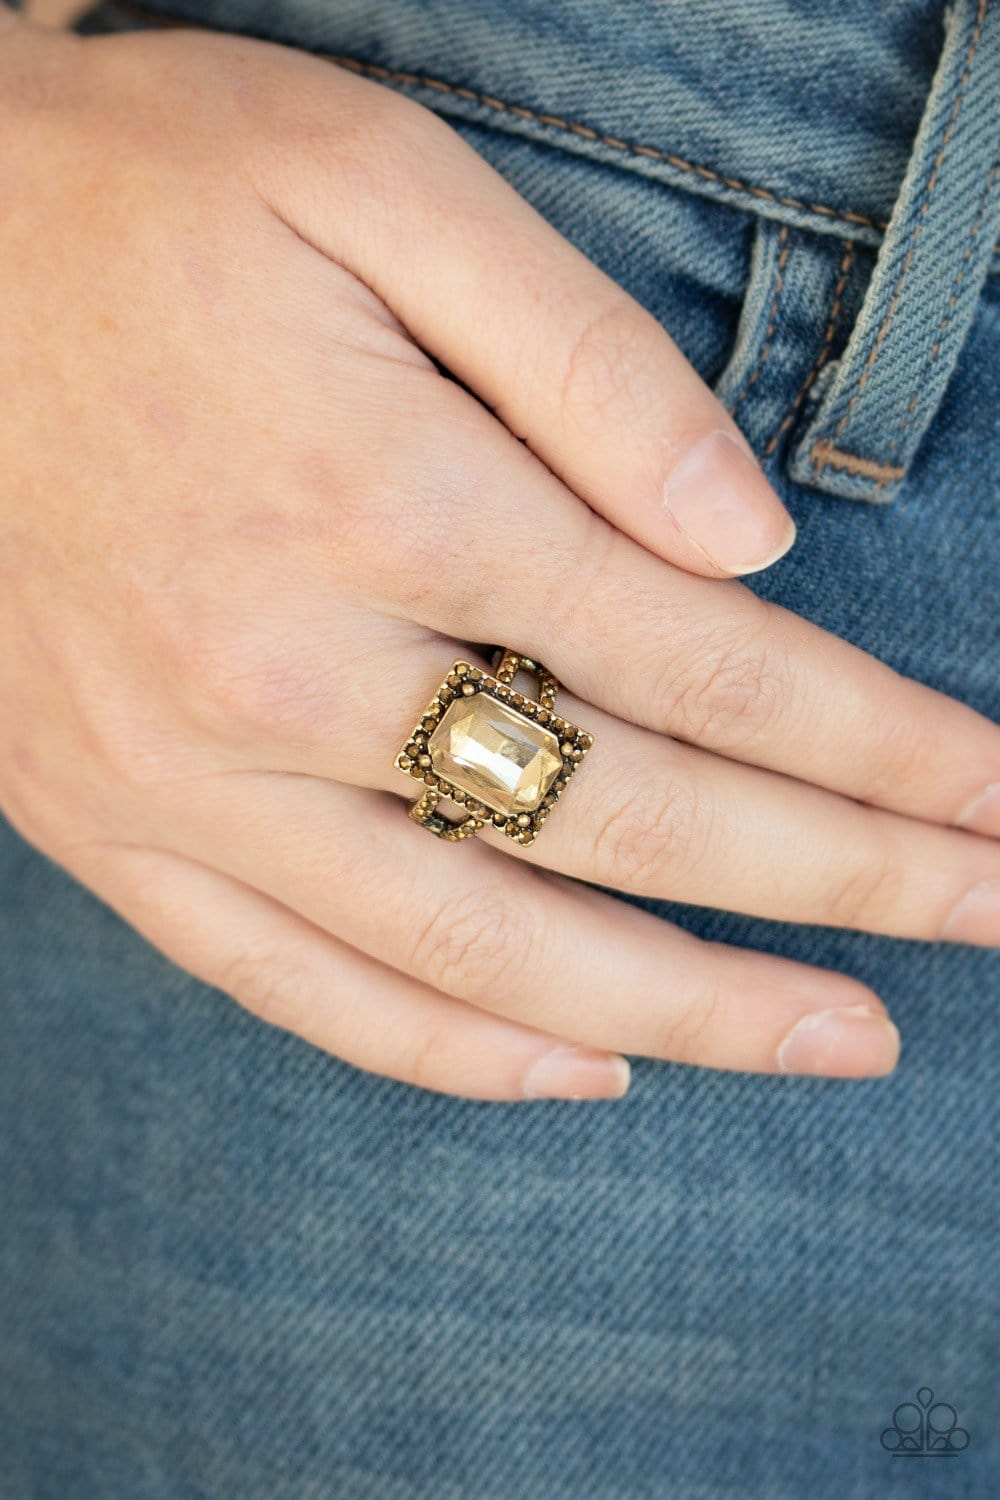 Paparazzi: Utmost Prestige - Brass Ring